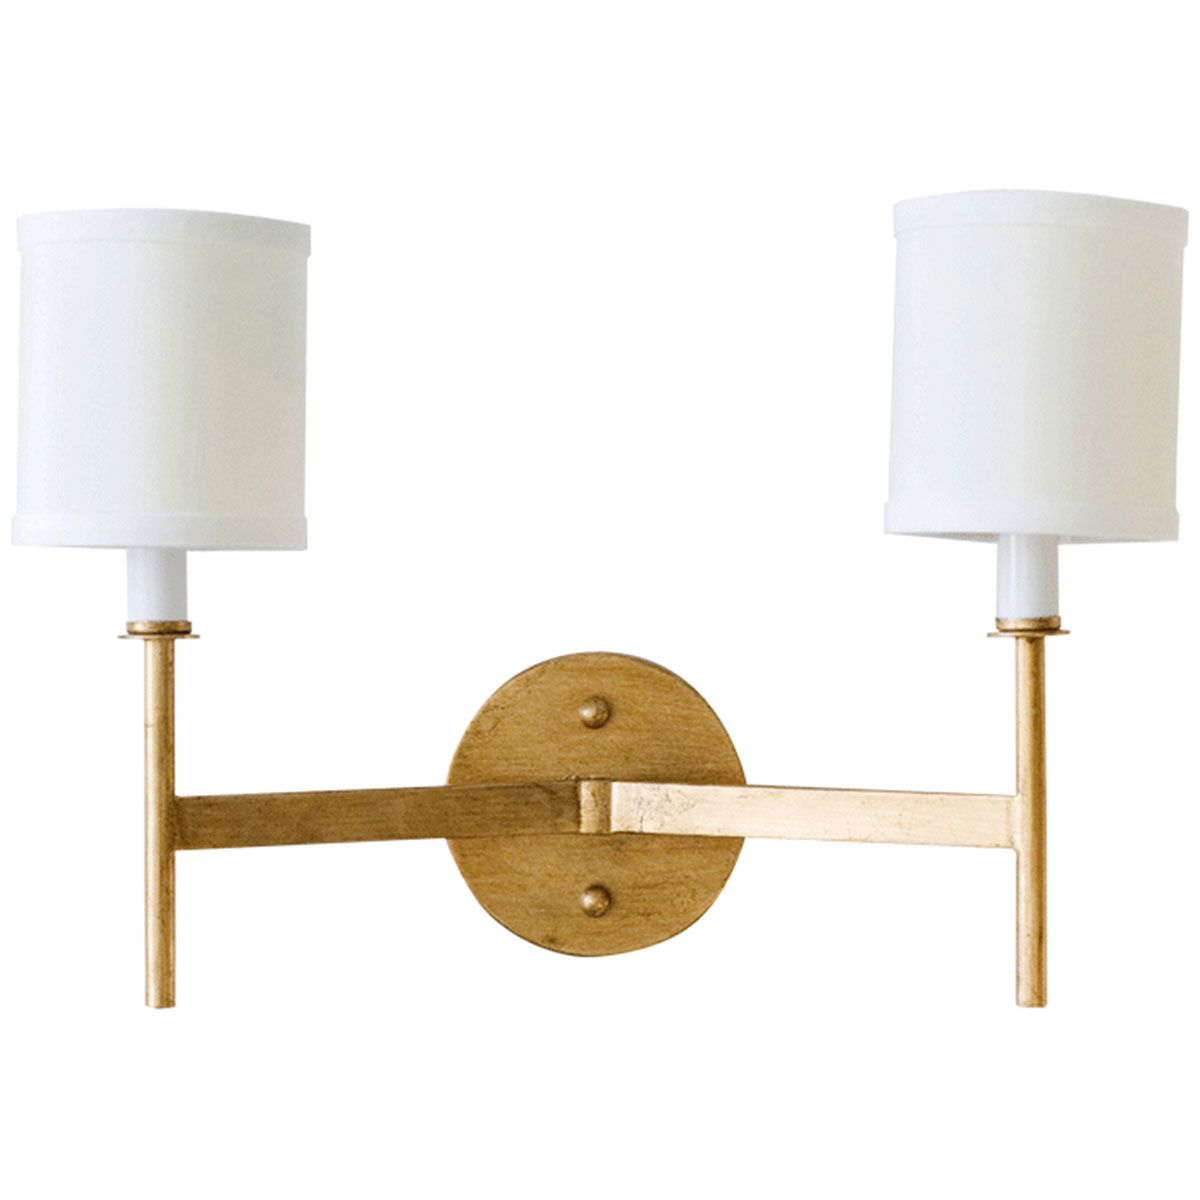 Worlds Away 2 Arm Wall Sconce With Cream Shades Randolph G Sconces Wall Sconce Lighting Wall Sconce Shade